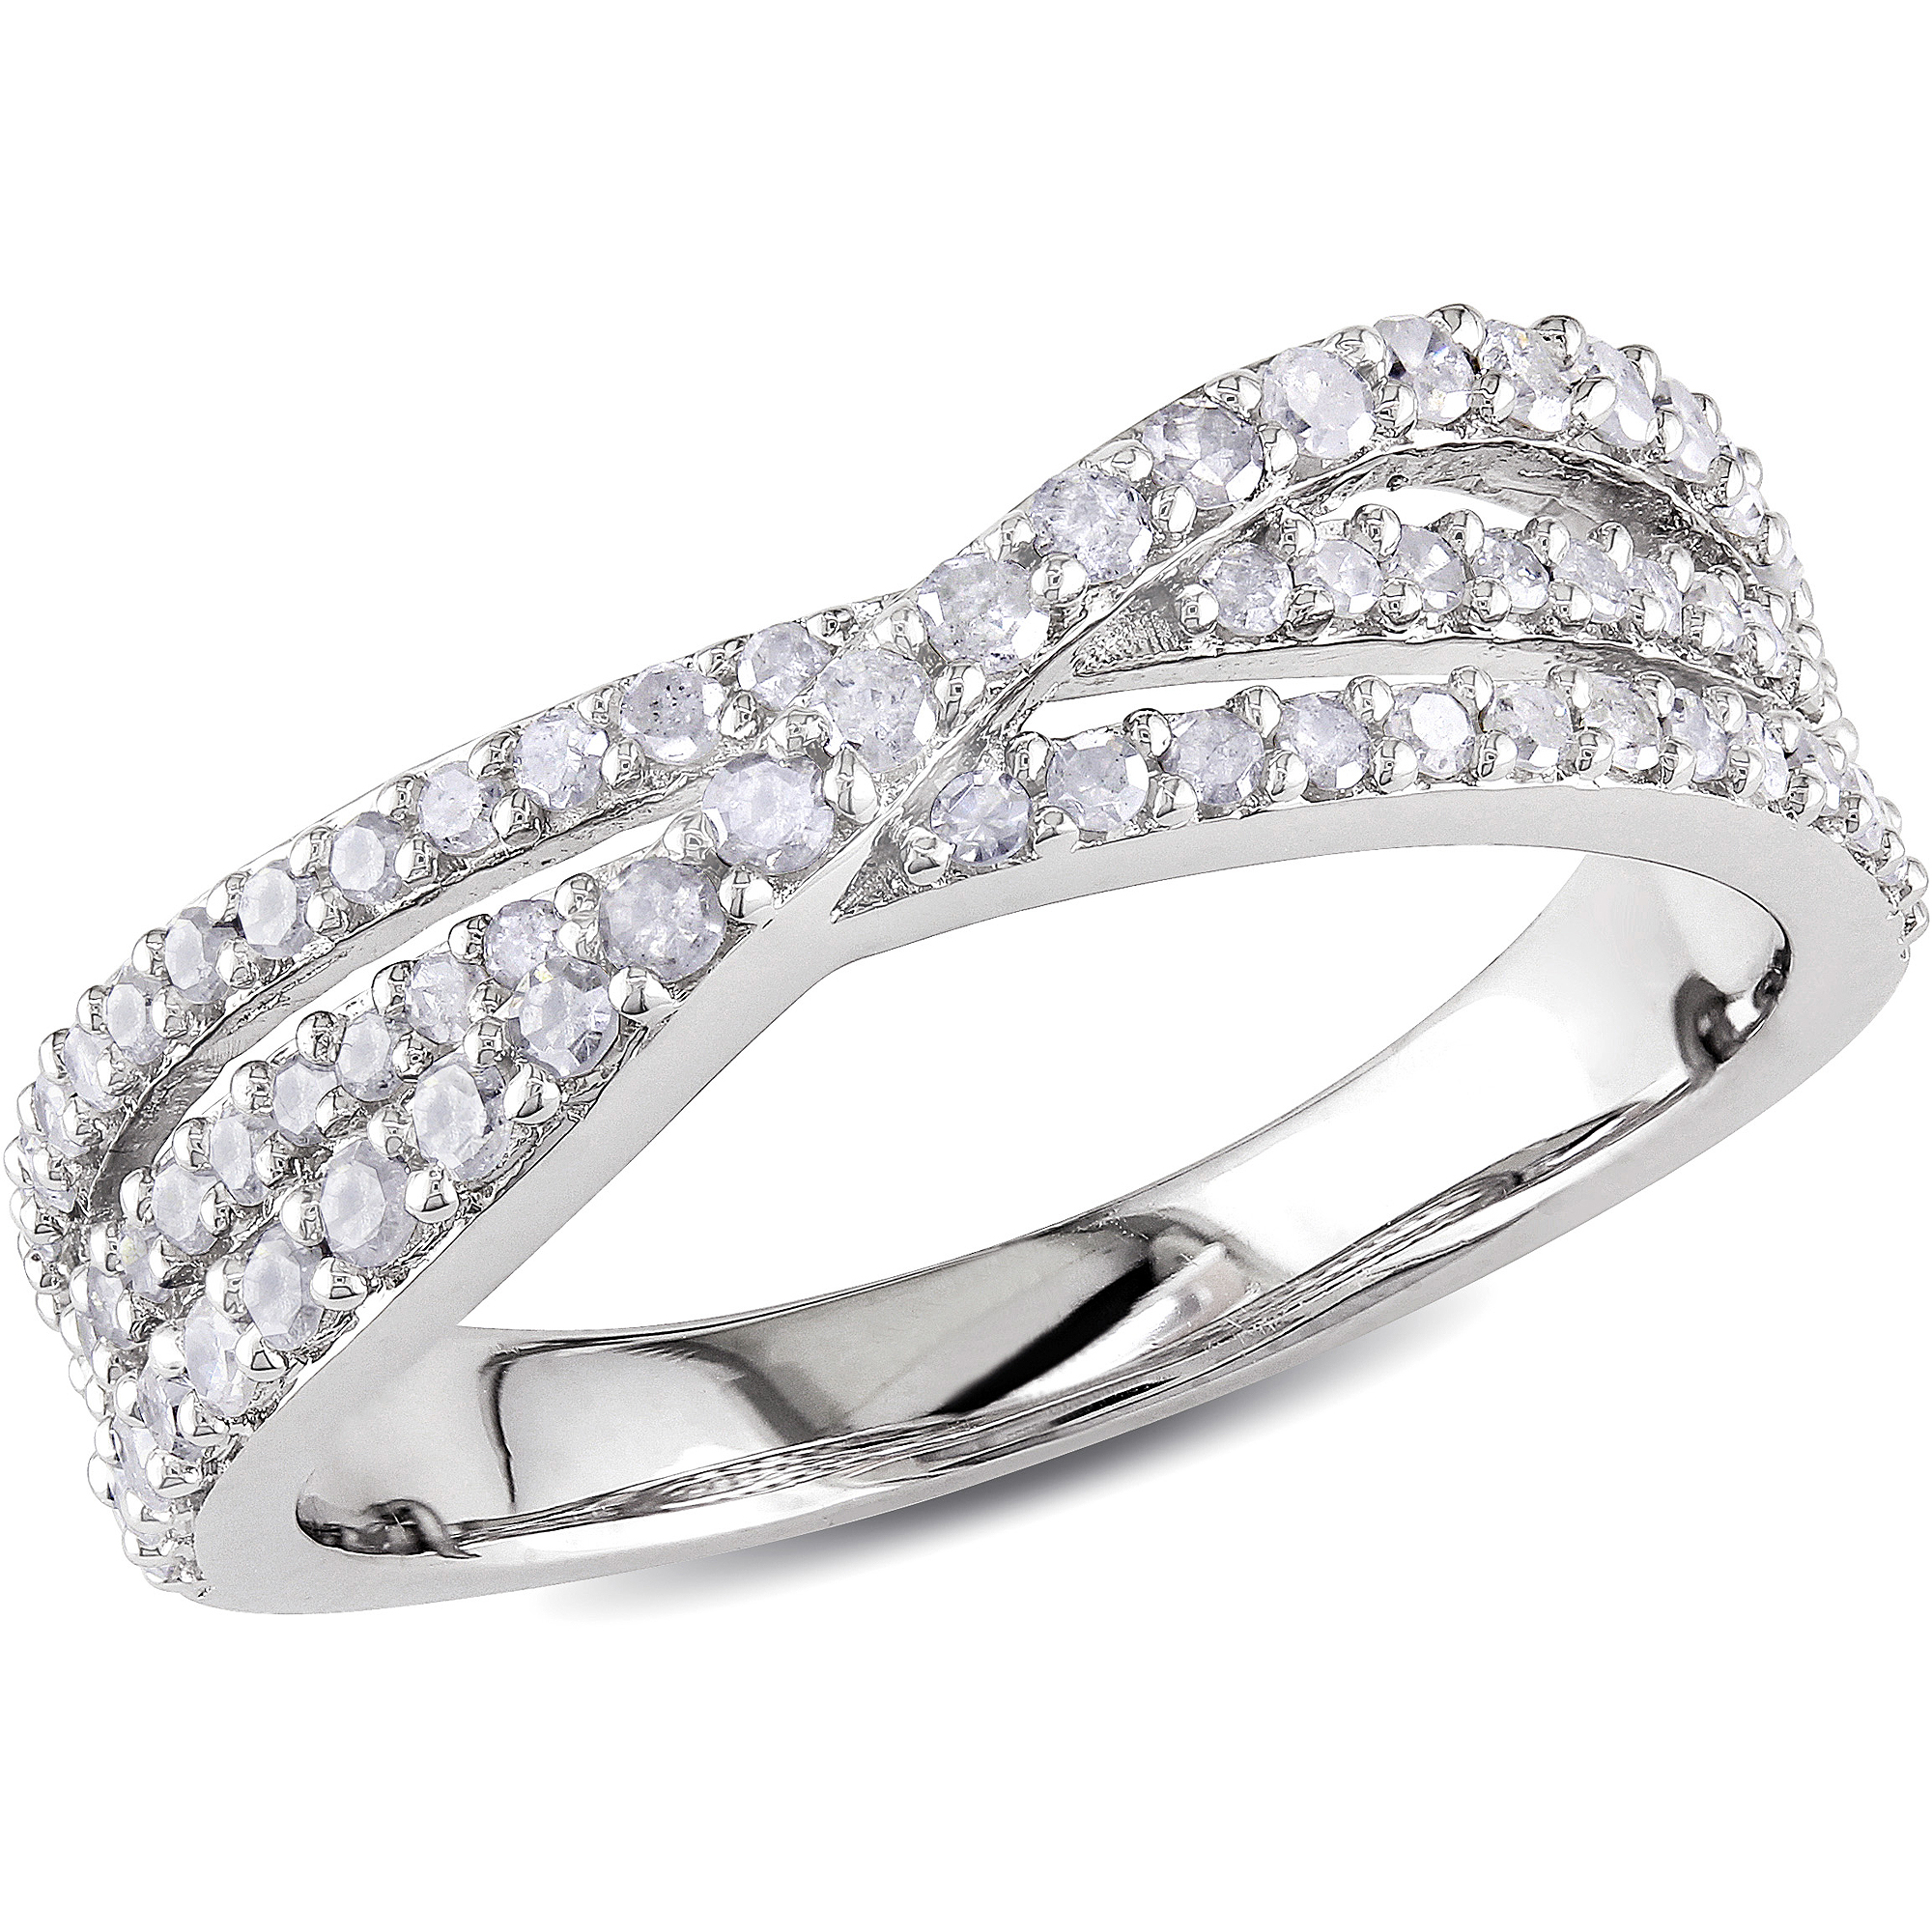 Miabella 1/2 Carat T.w. Diamond Fashion